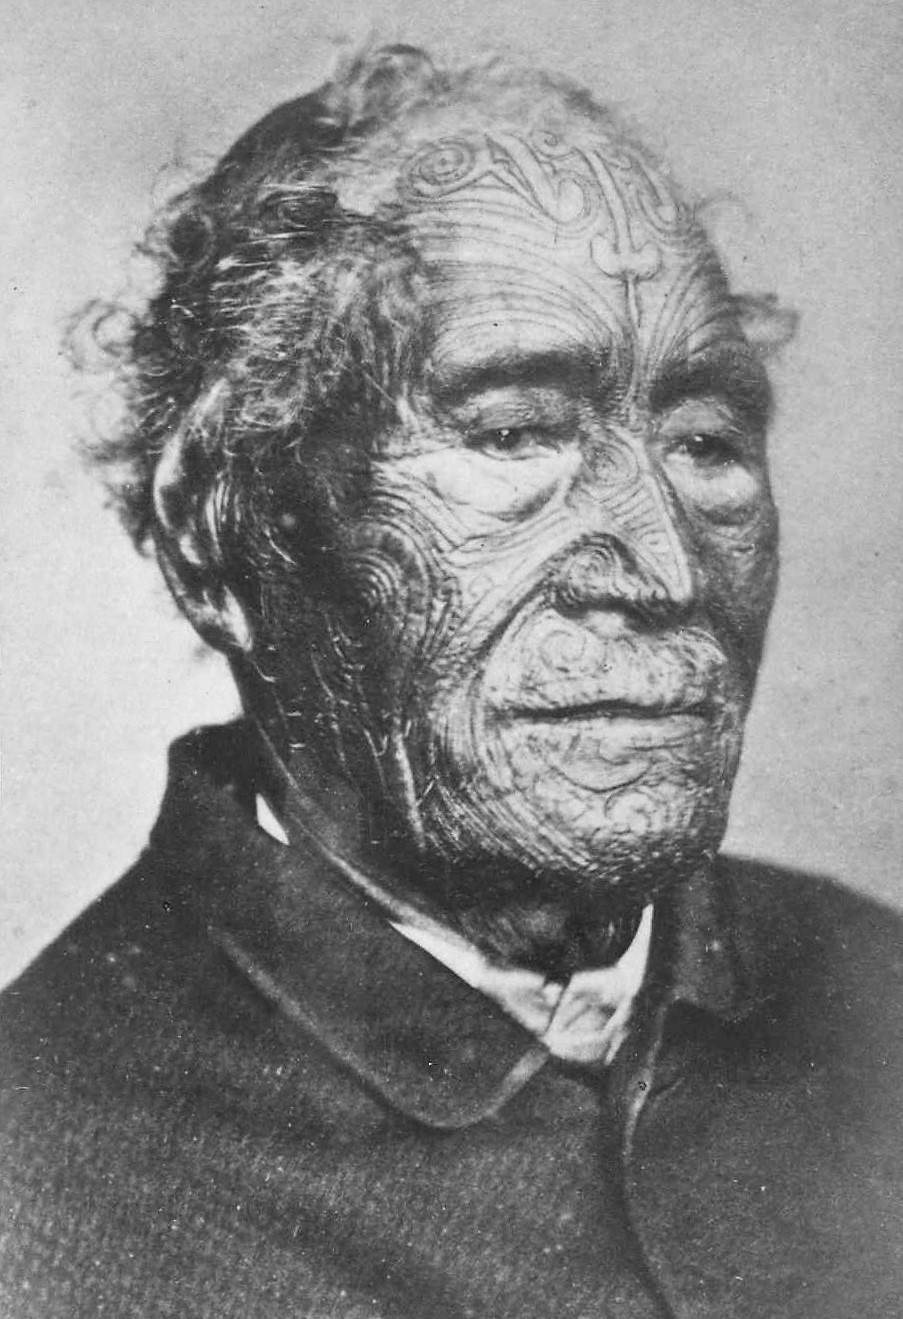 Tāmati Wāka Nene of Ngāpuhi was a signatory of the Treaty of Waitangi in 1840, and he also was influential in convincing others to sign.